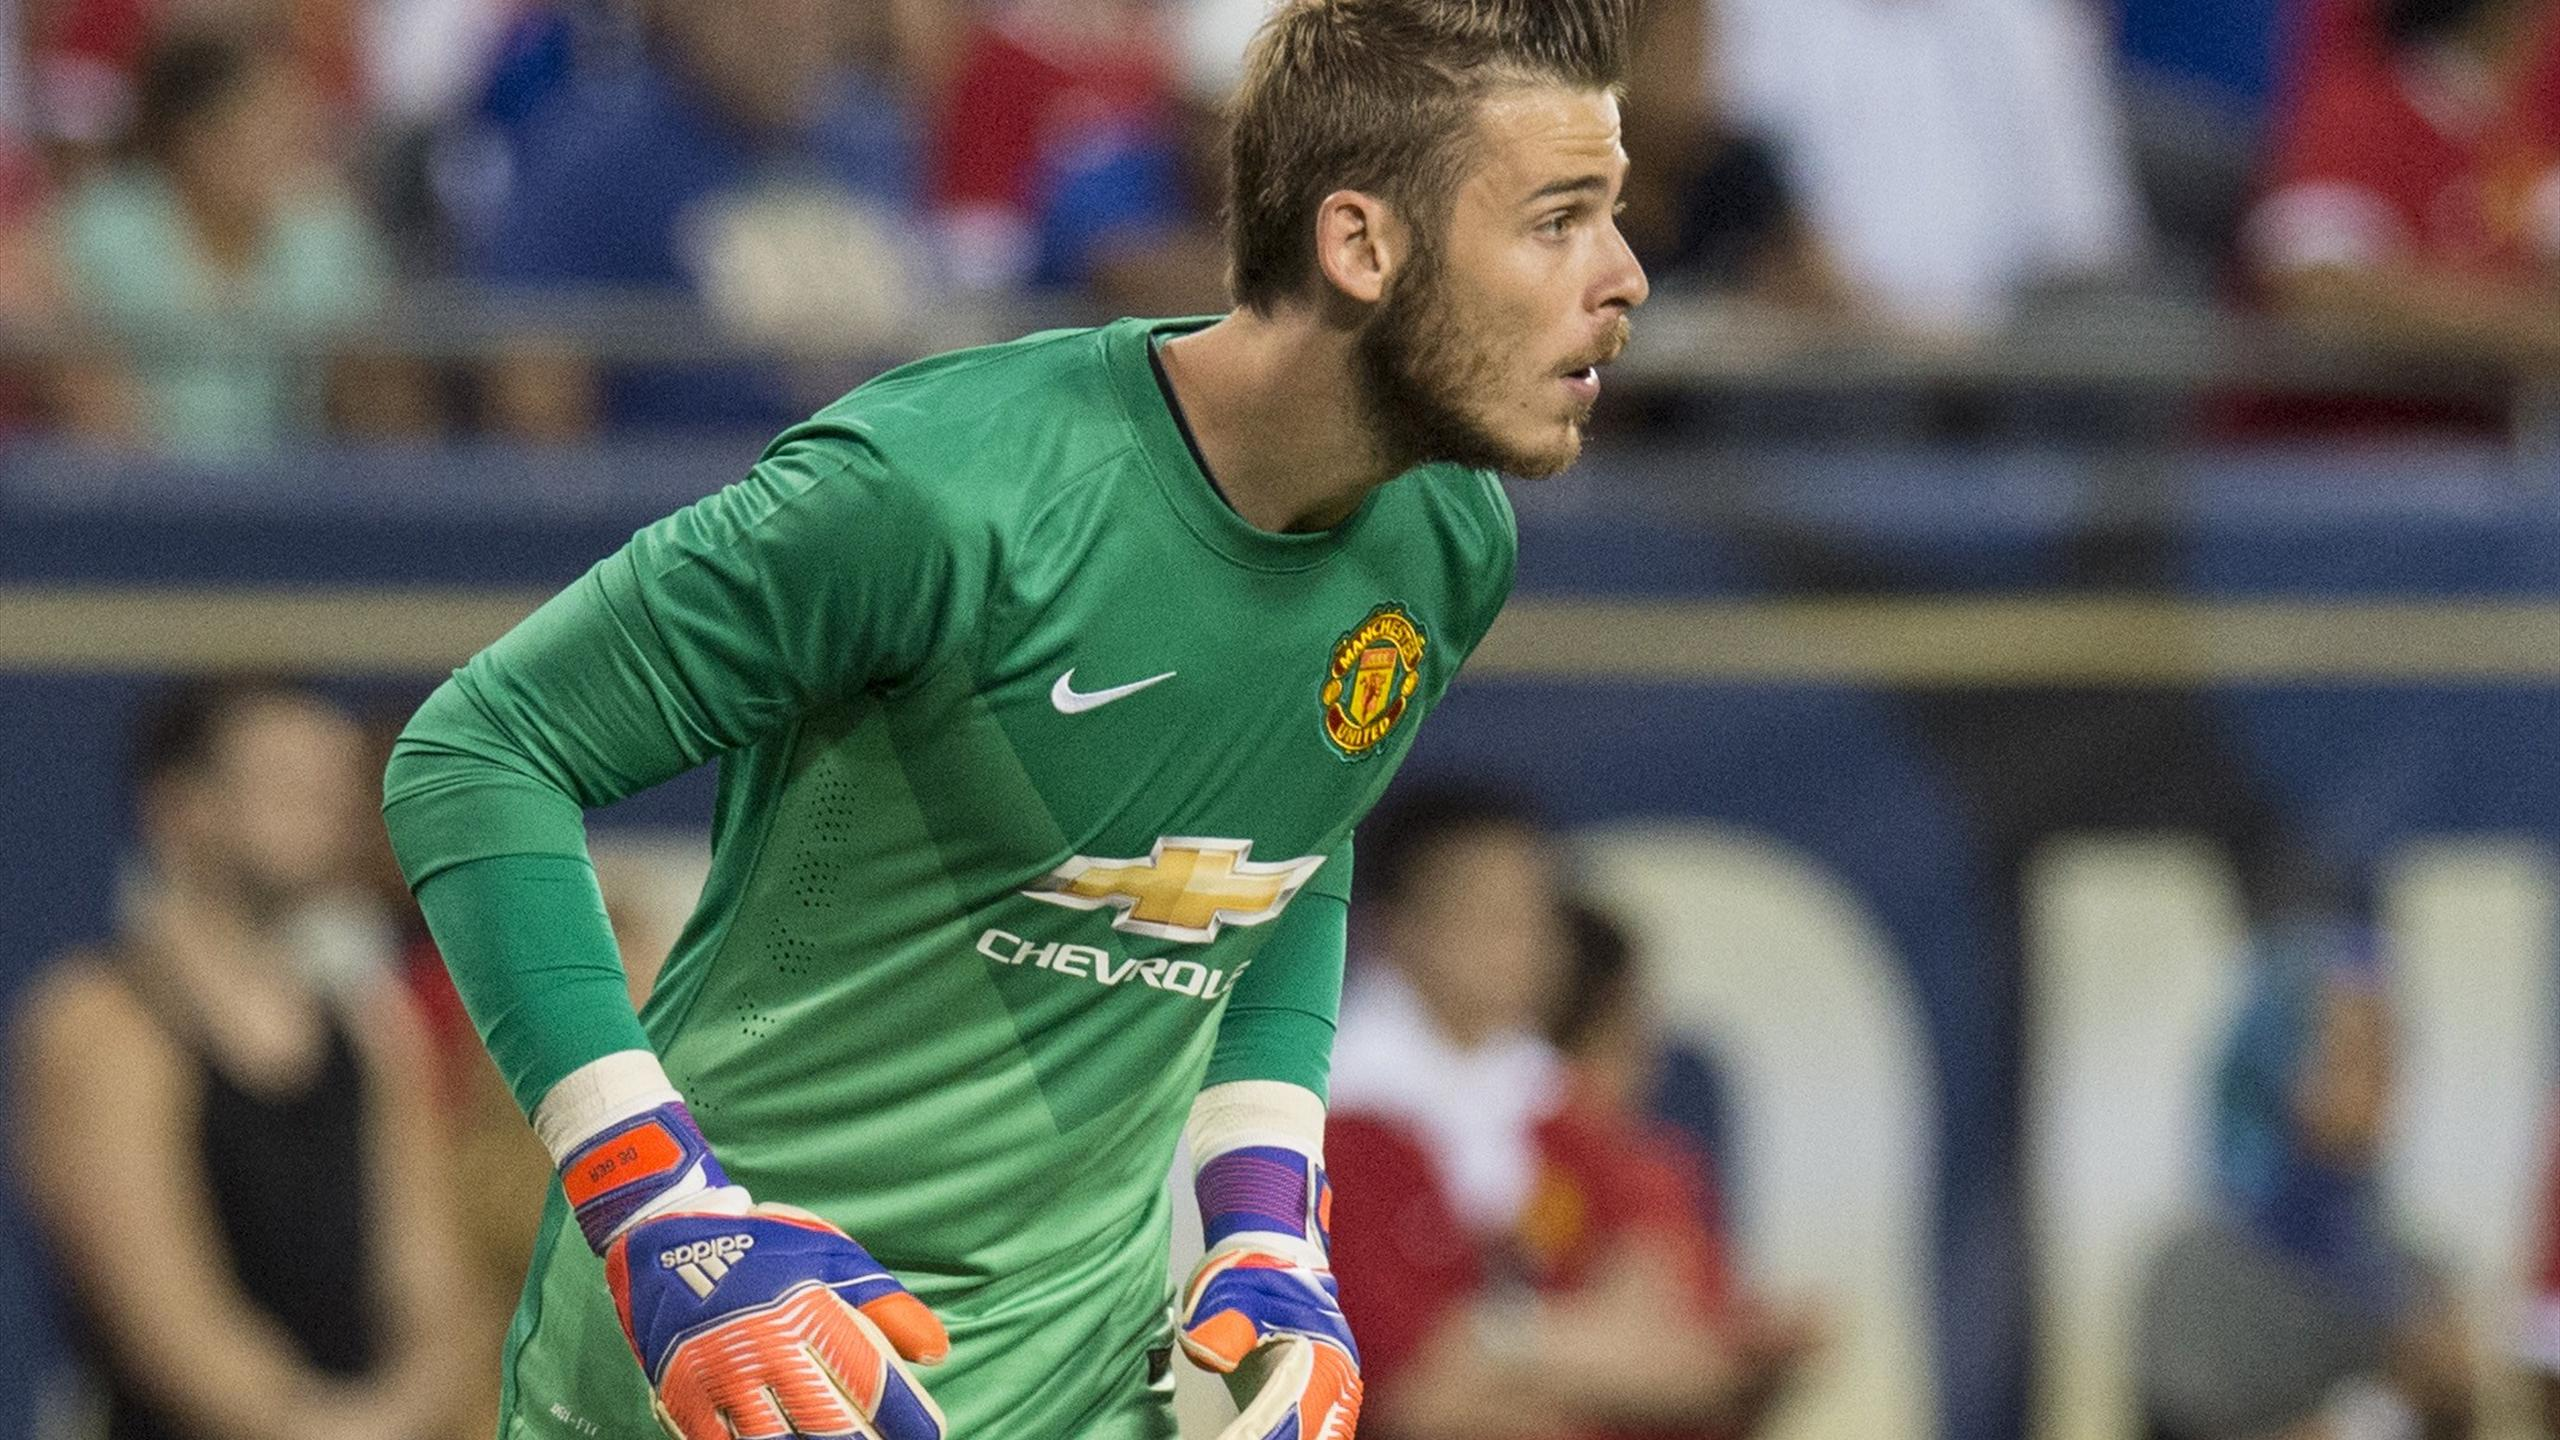 David De Gea lors de PSG-Manchester United (International Campions Cup)